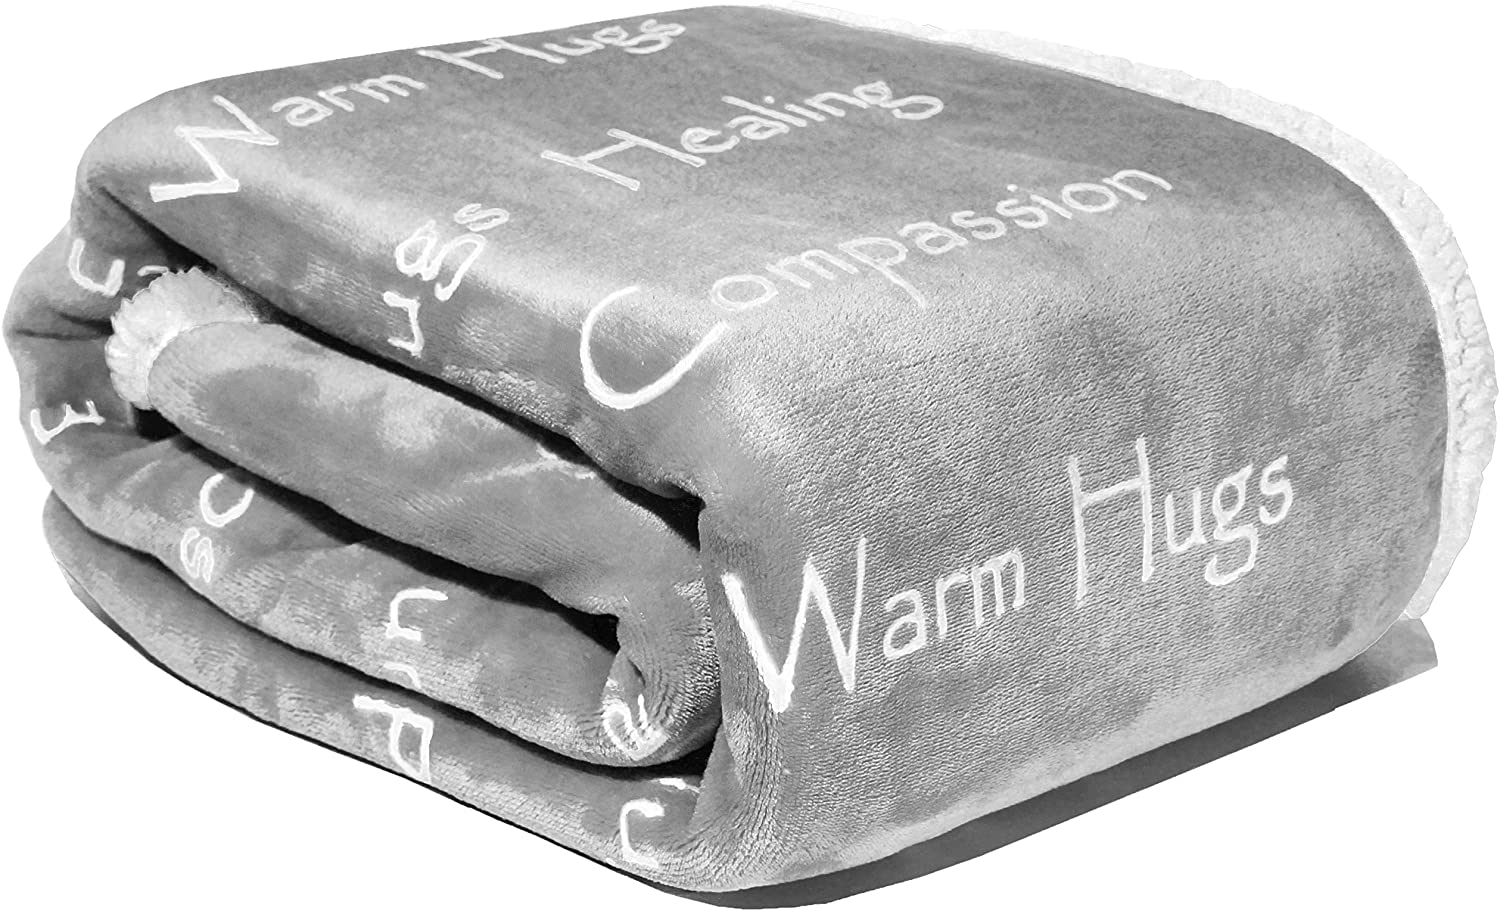 Compassion Blanket - Warm Hugs & Positive Energy Gift for Men, Women & Children - Healing Thoughts Positive Energy Courage Soft Fluffy Comfort & Caring (50 x 65 Silver Gray)